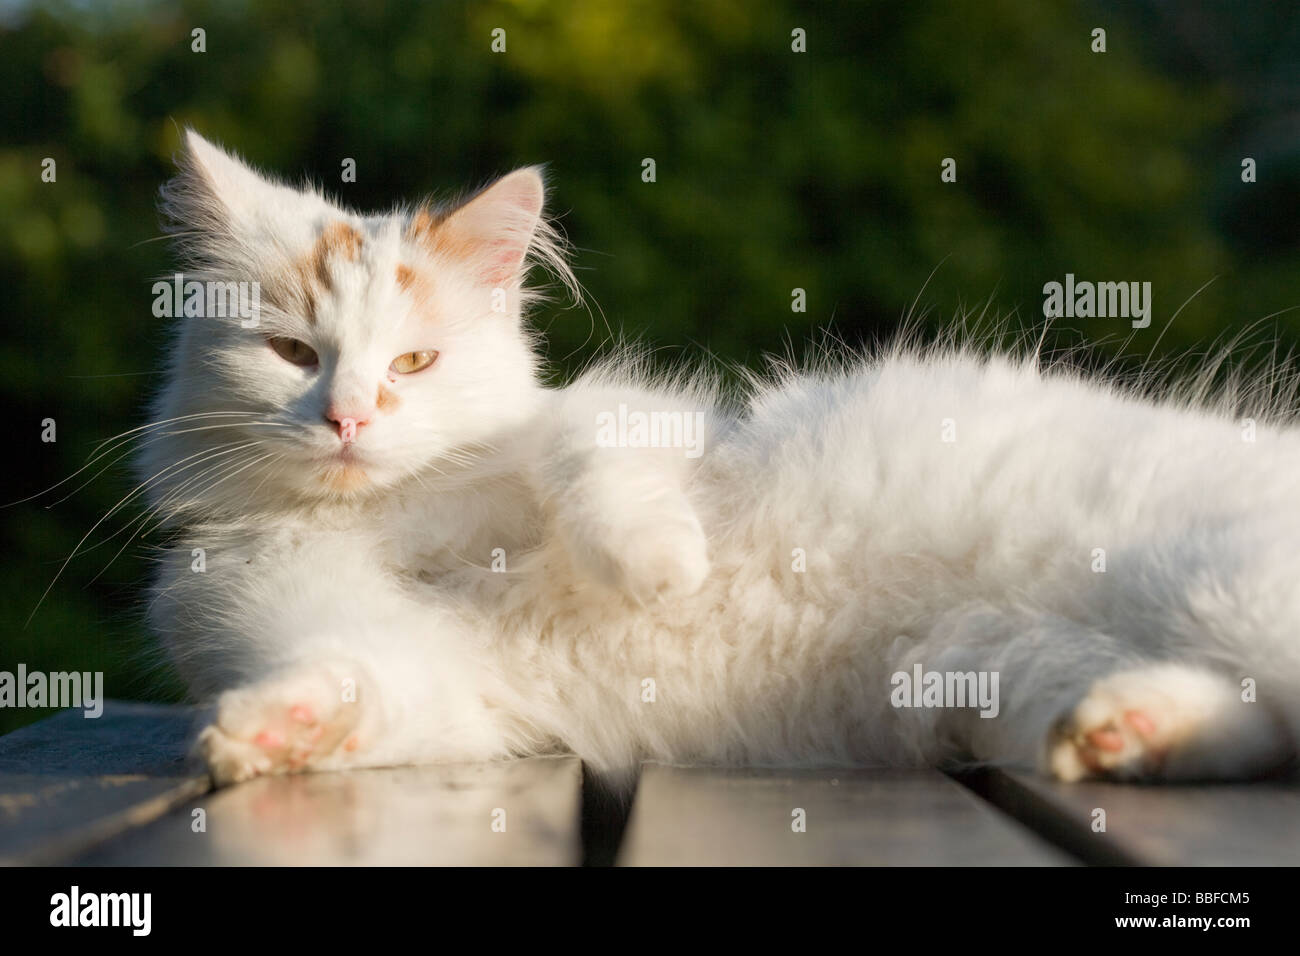 fb2e4ebd3e Turkish Van cat Stock Photo  24310837 - Alamy